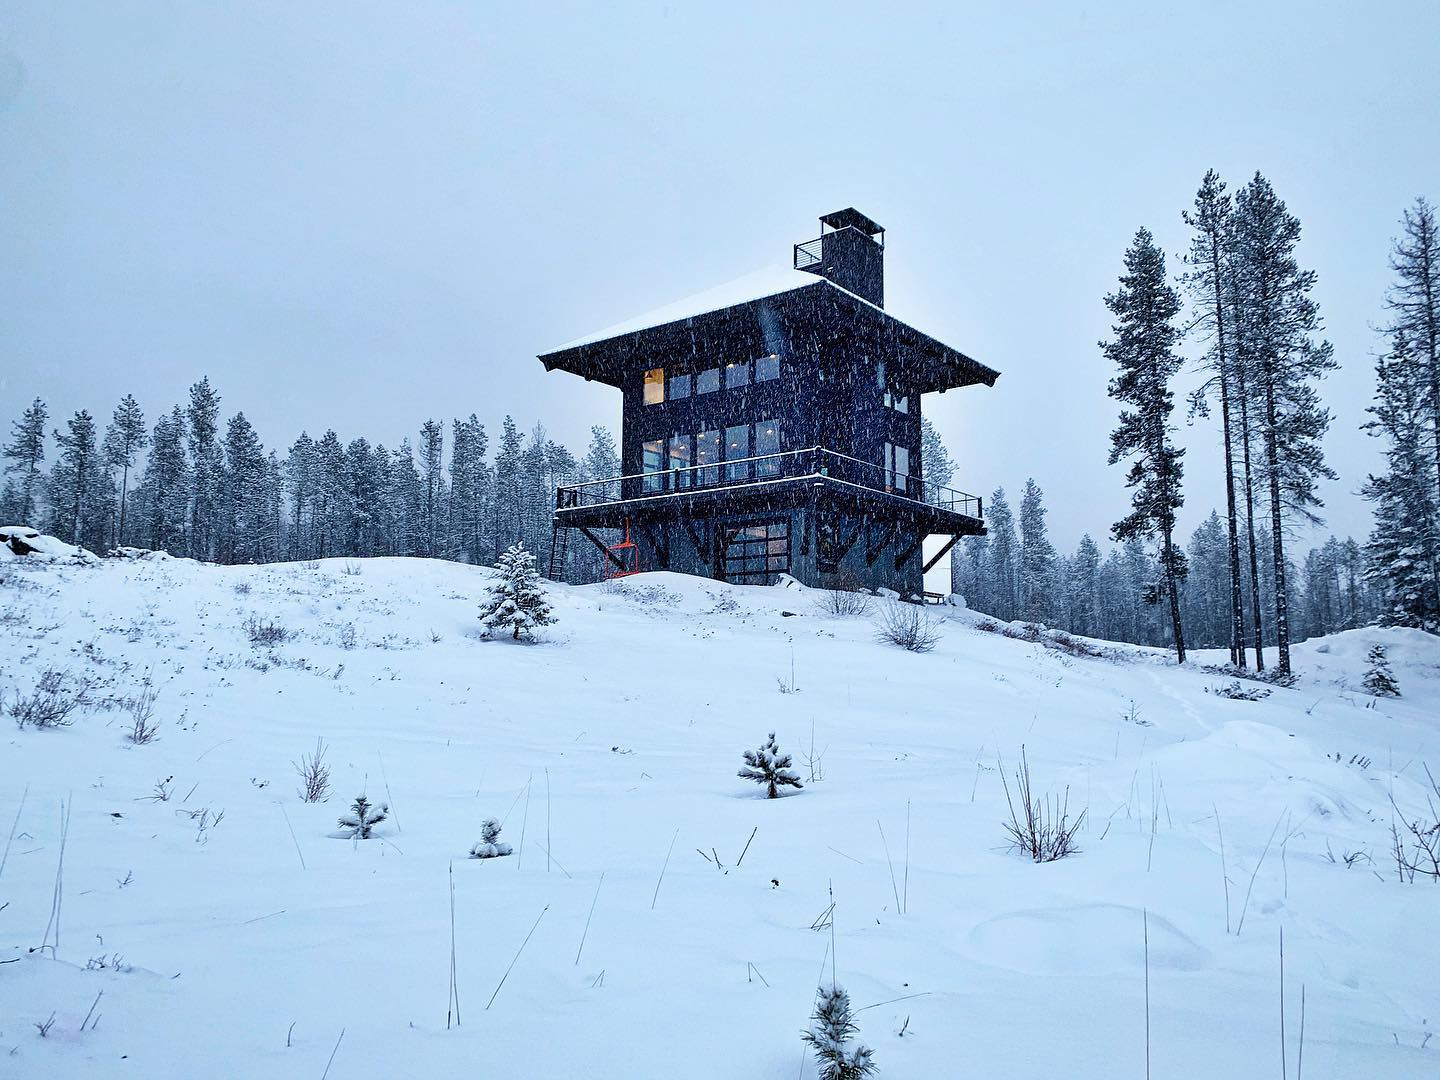 April Fools Day...back to winter in Montana. Pretty but not funny whitefish custom home builder